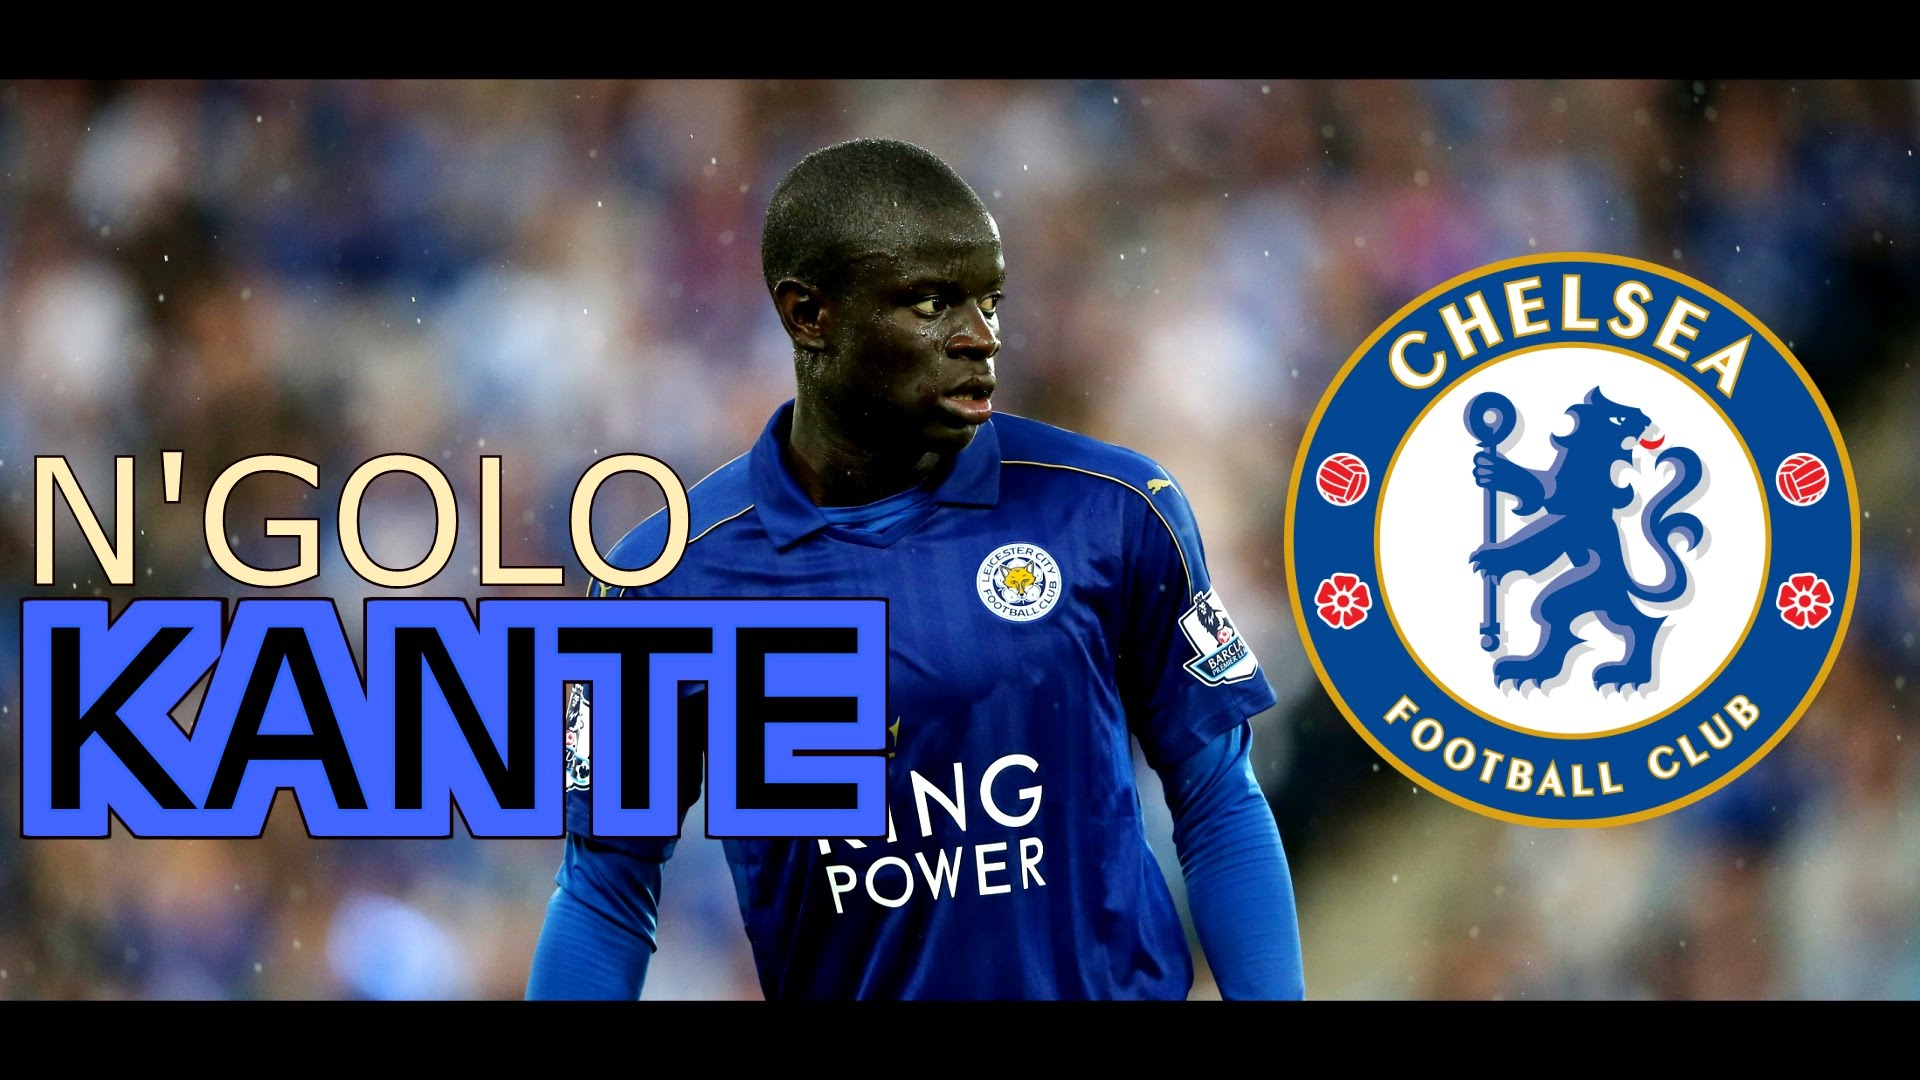 Ngolo Kante Wallpaper   Chelsea Vs New England Revolution 242041 1920x1080